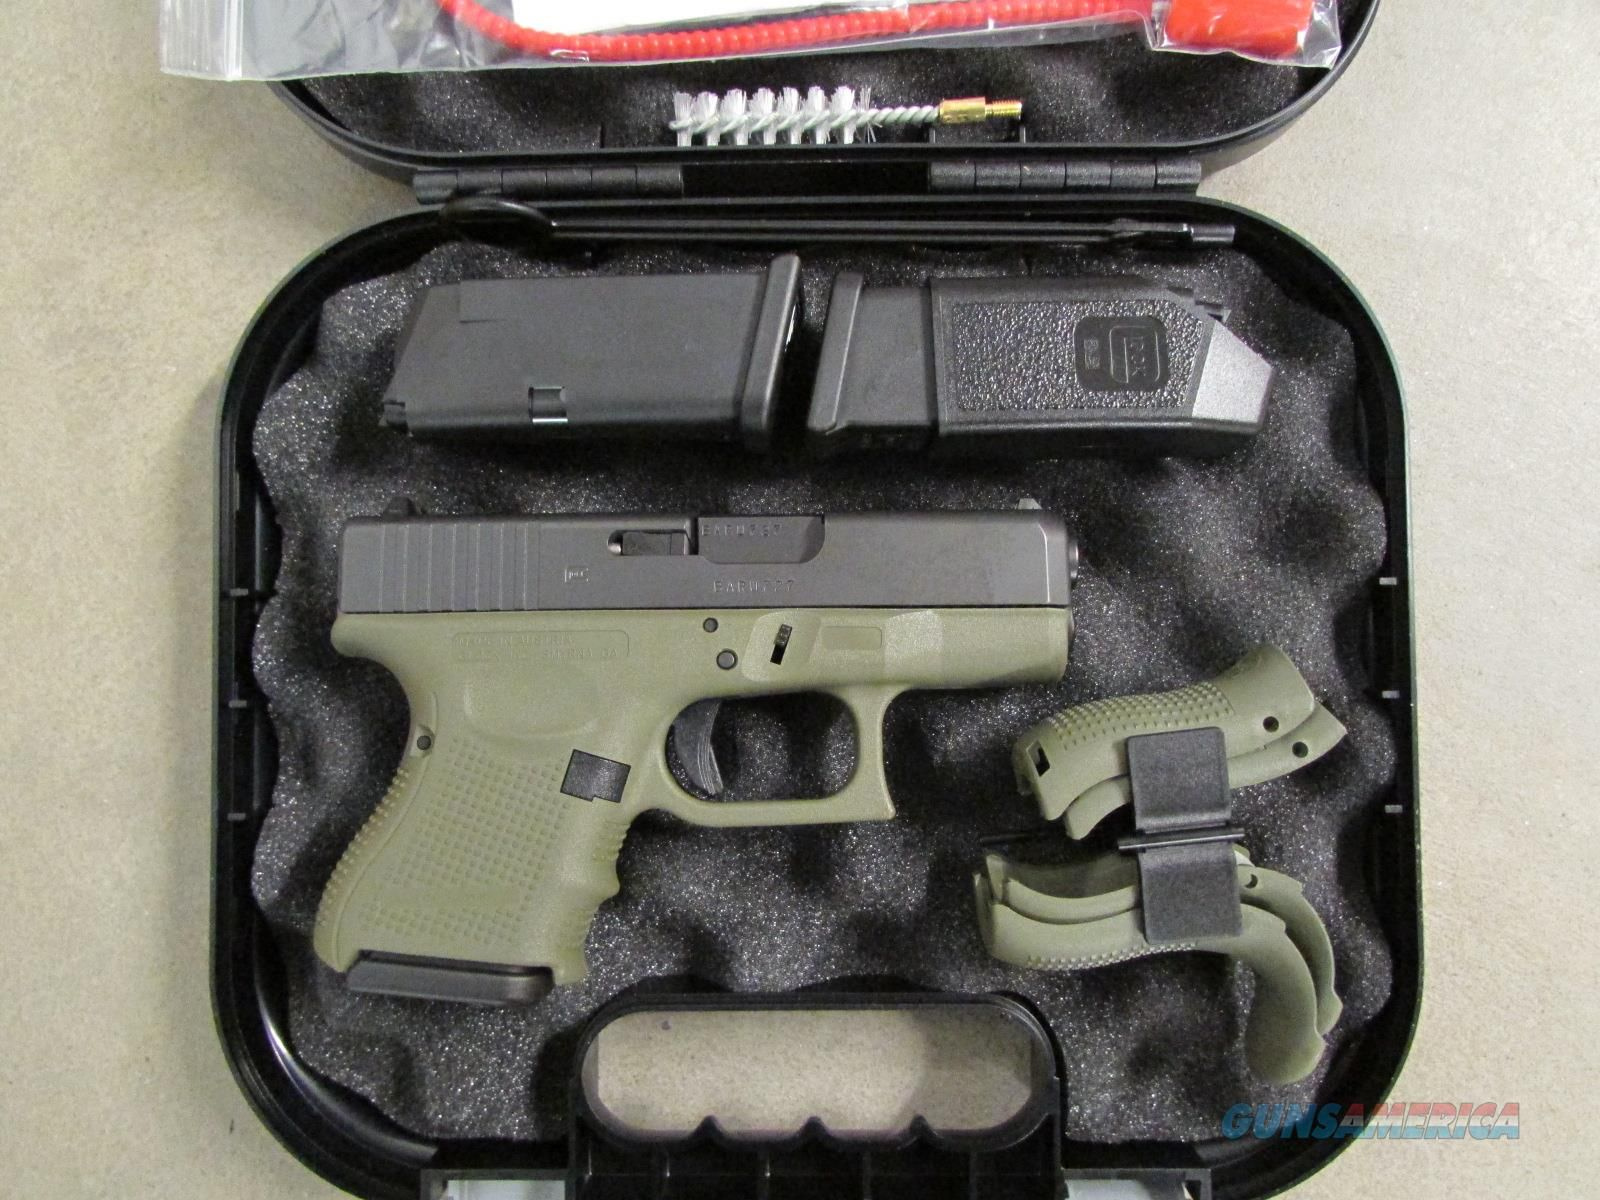 Glock 23 G23 Gen4 Battlefield Green Frame .40 S&W PG235... Loading that  magazine is a pain! Get your Magazine speedloader today! http://www.amazon…